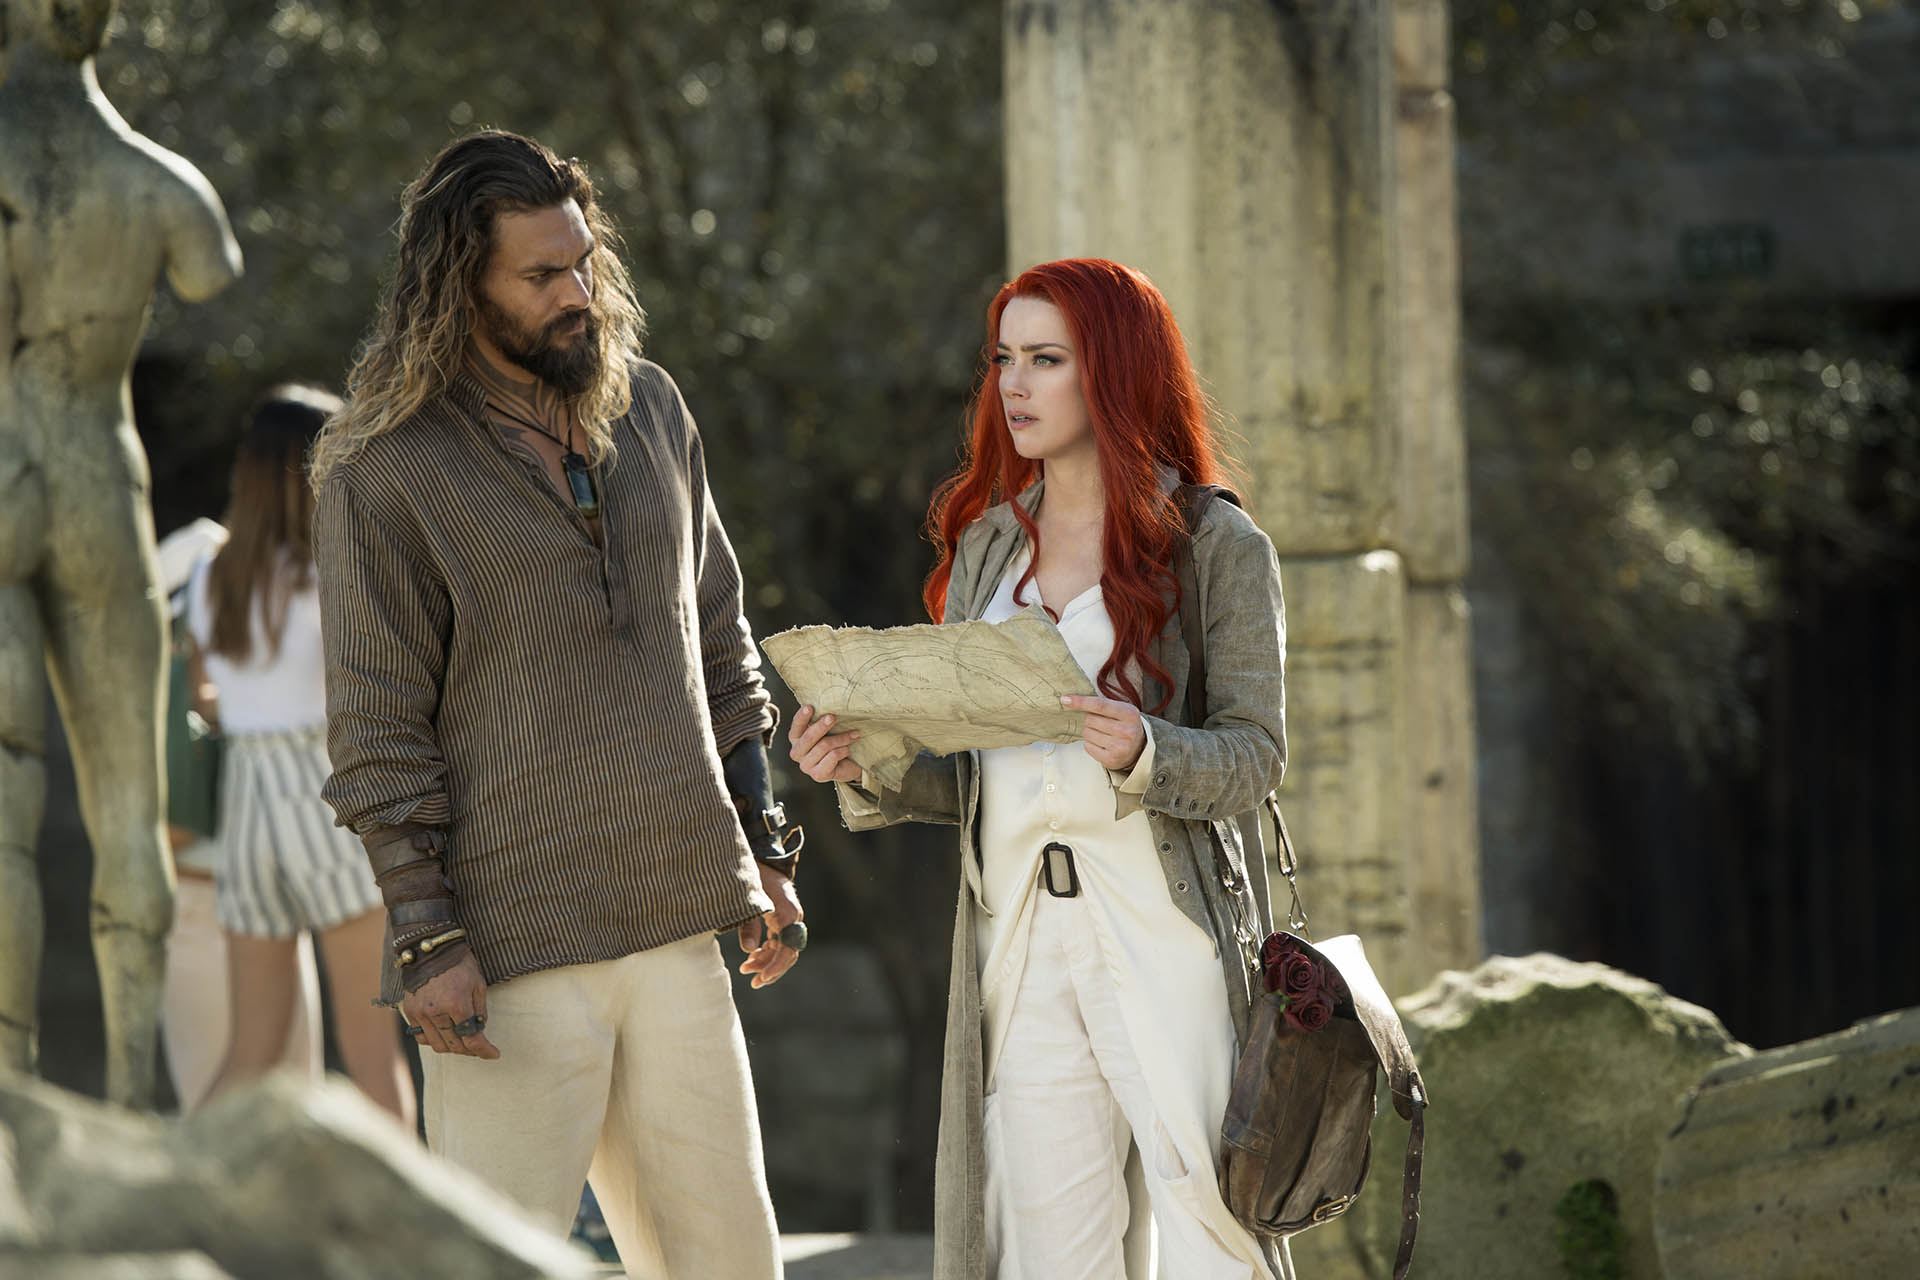 Jason Momoa e Amber Heard nel film Aquaman, diretto da James Wan e prodotto da DC Entertainment